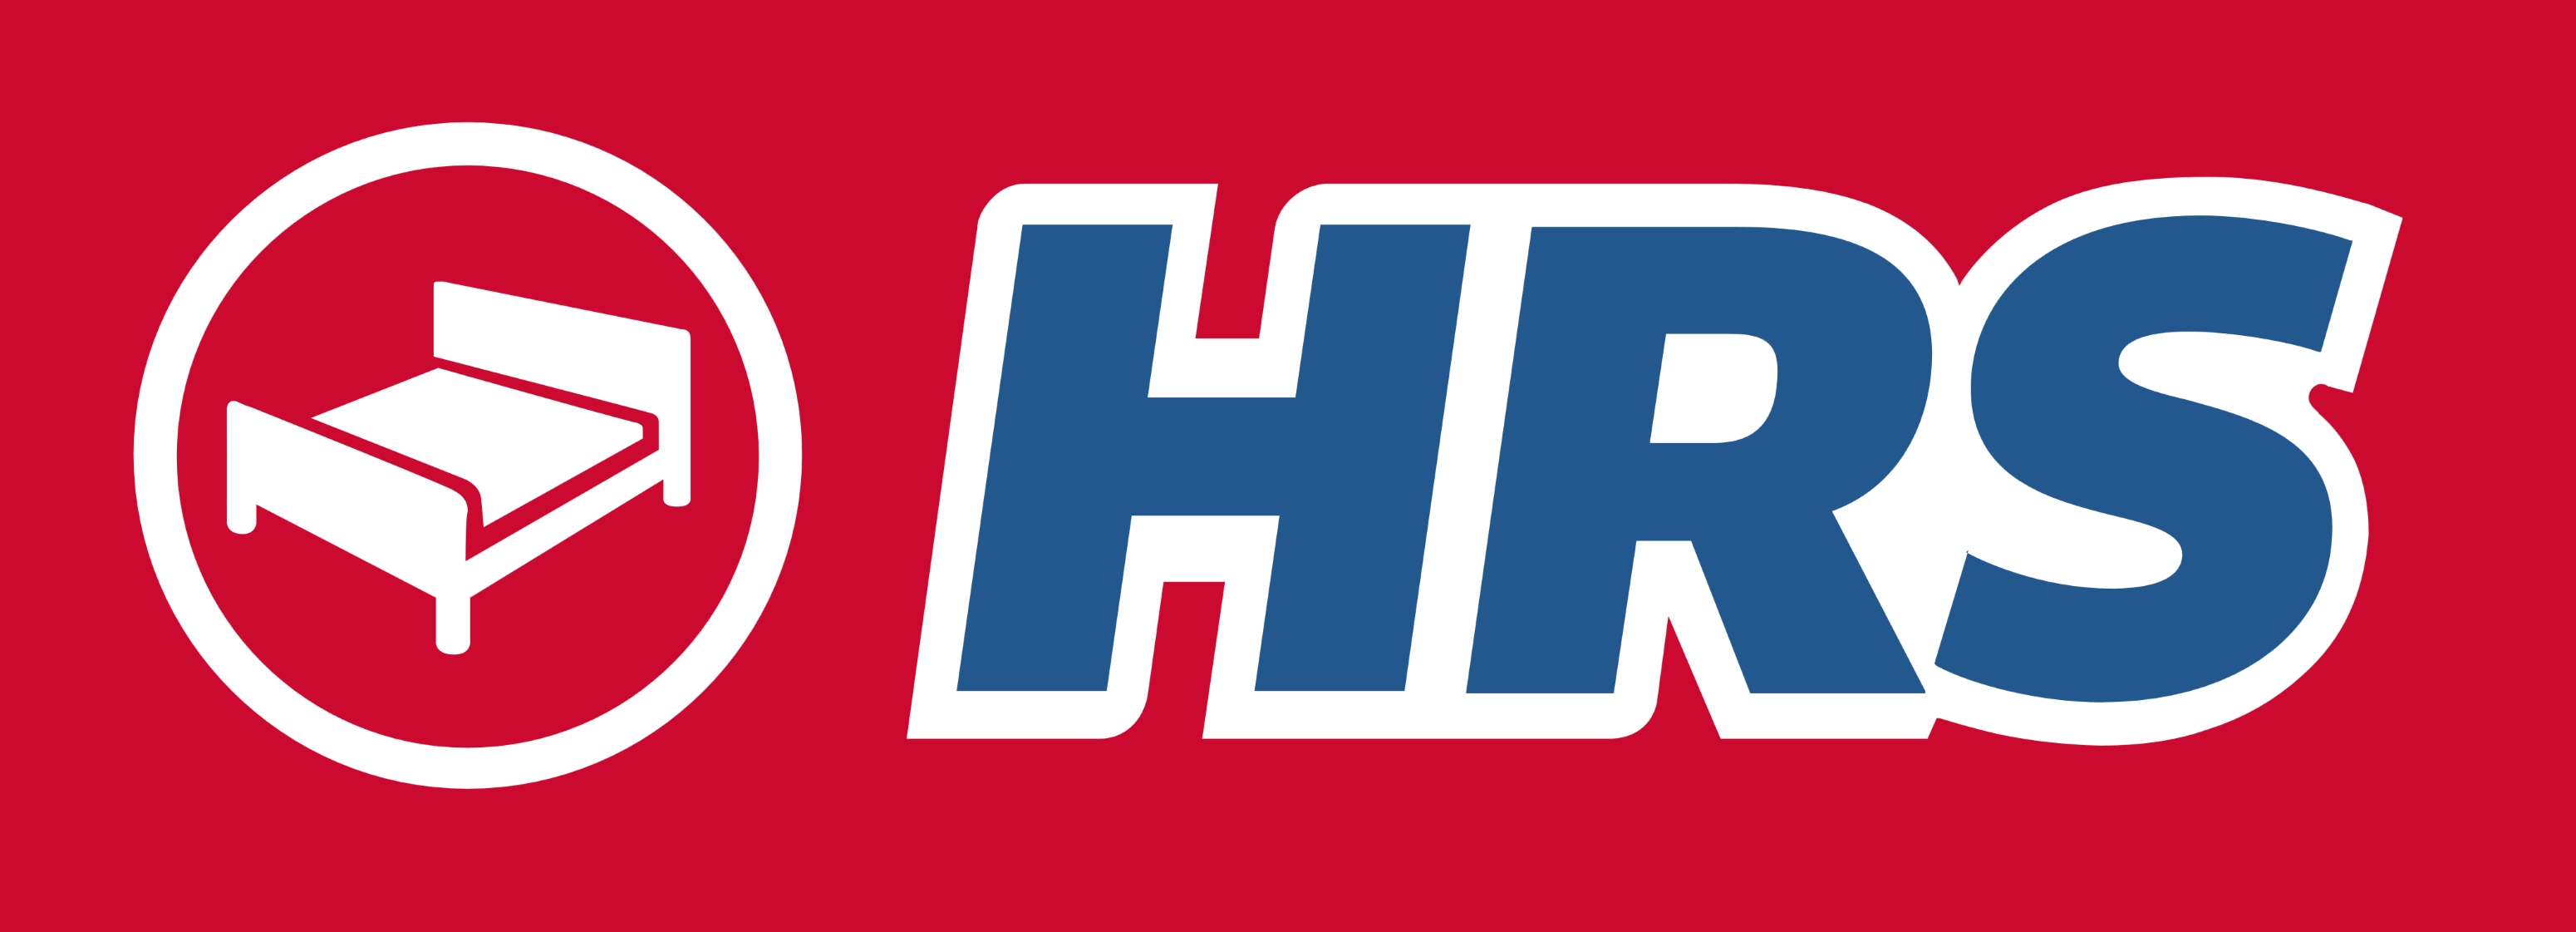 Hrs Logo PNG - 30702